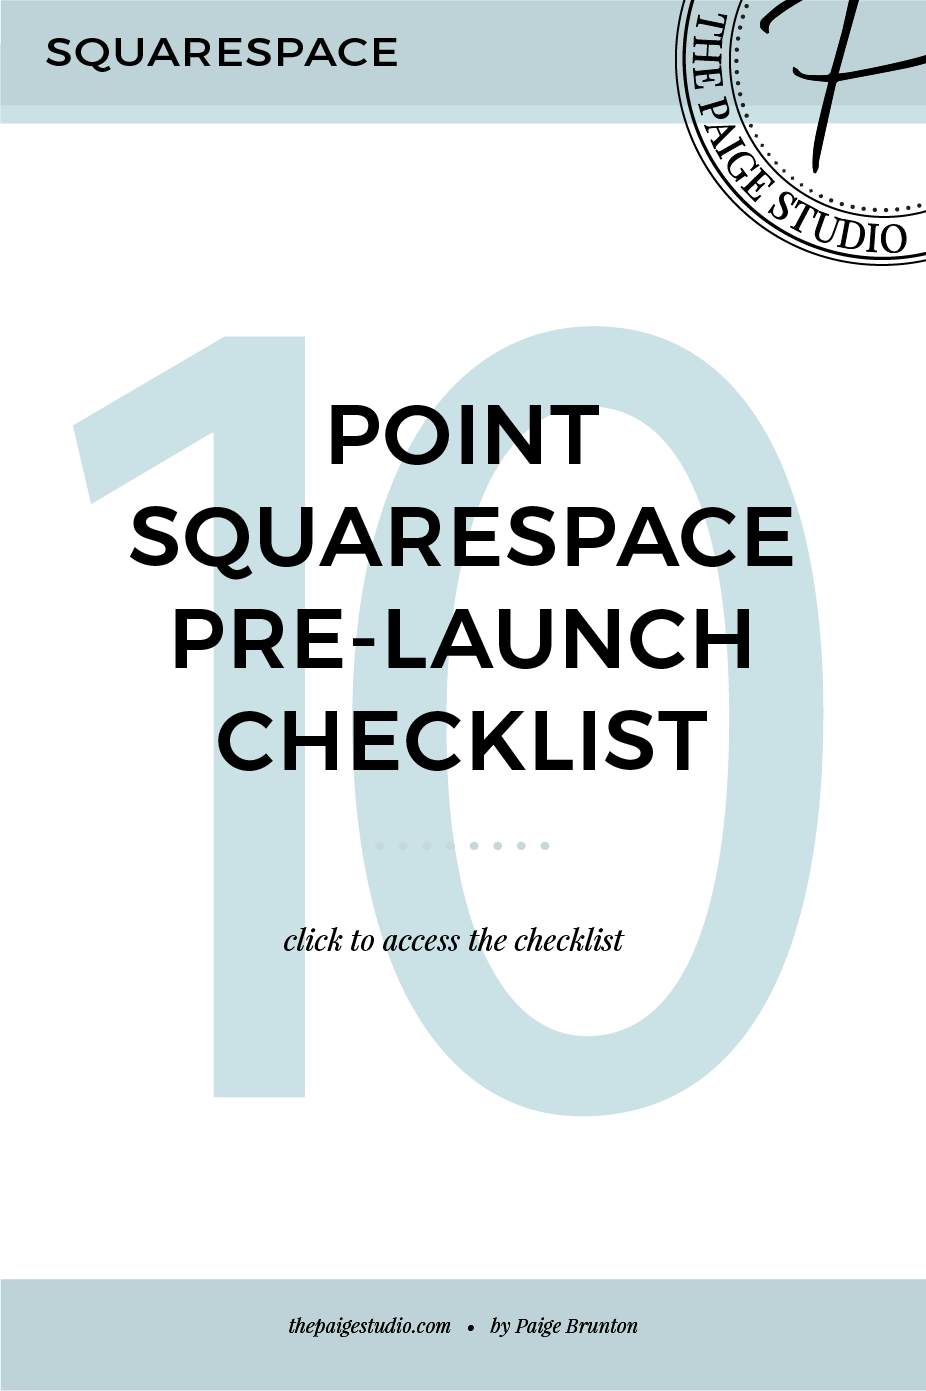 Squarespace+pre-launch+checklist.png